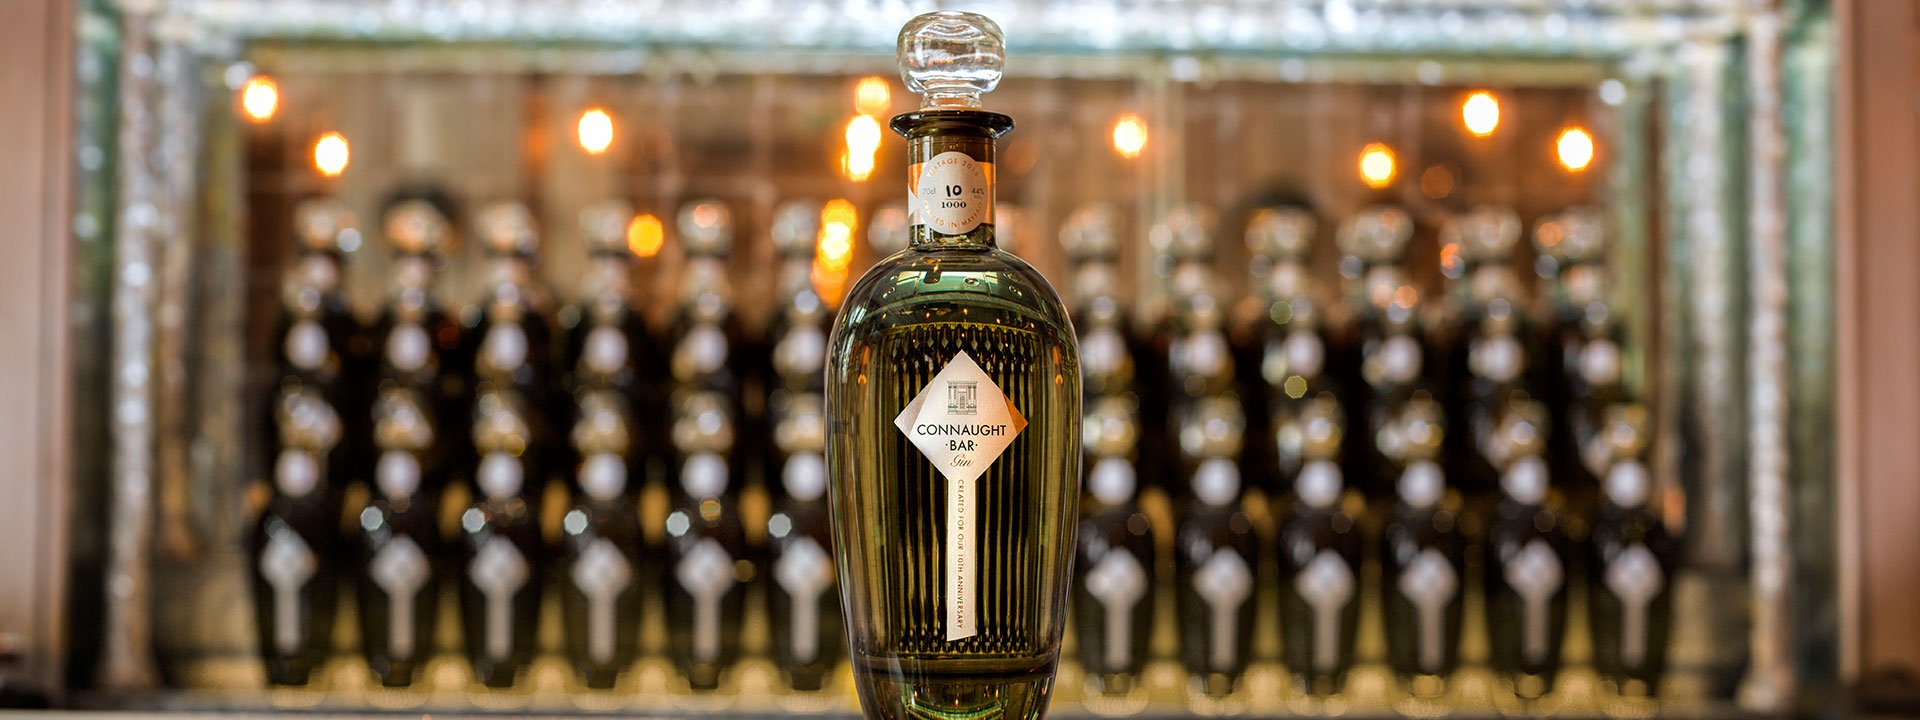 Connaught Bar Bottle of Gin